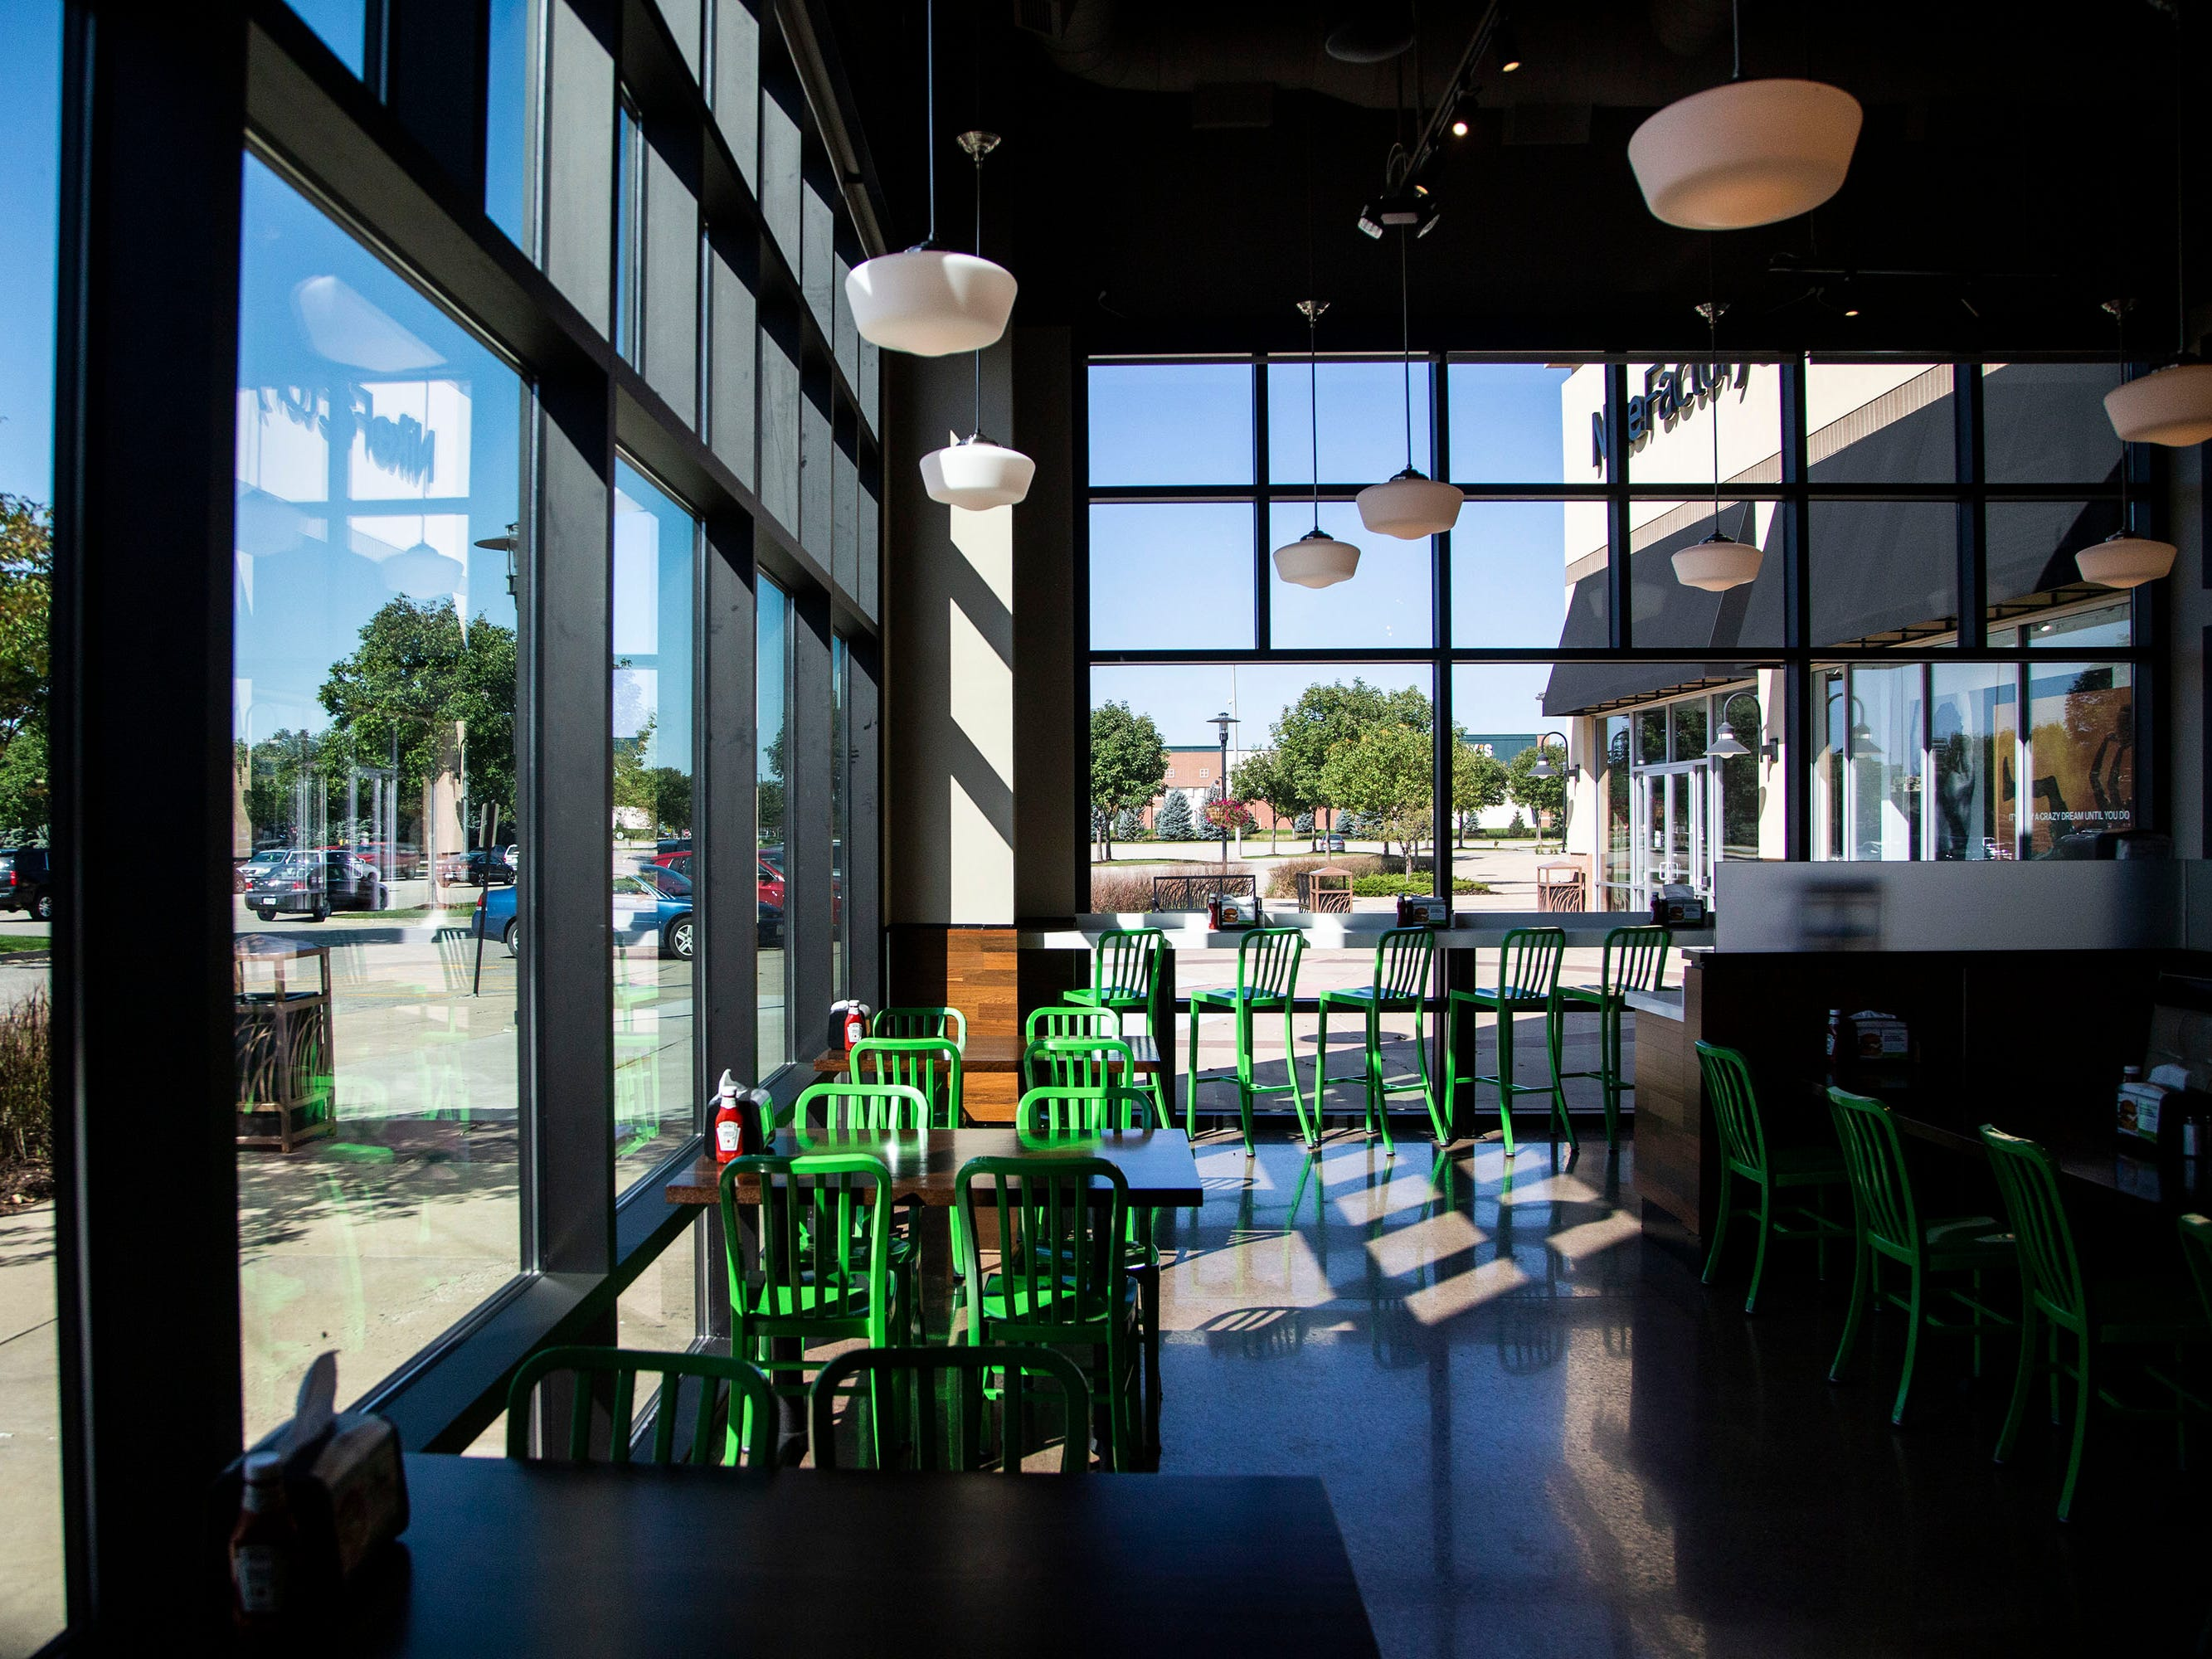 Wahlburgers, a burger restaurant created by actor Mark Wahlberg and his bothers is ready to open in Des Moines on Monday, Sept. 10, 2018, in the Jordan Creek Town Center in West Des Moines.